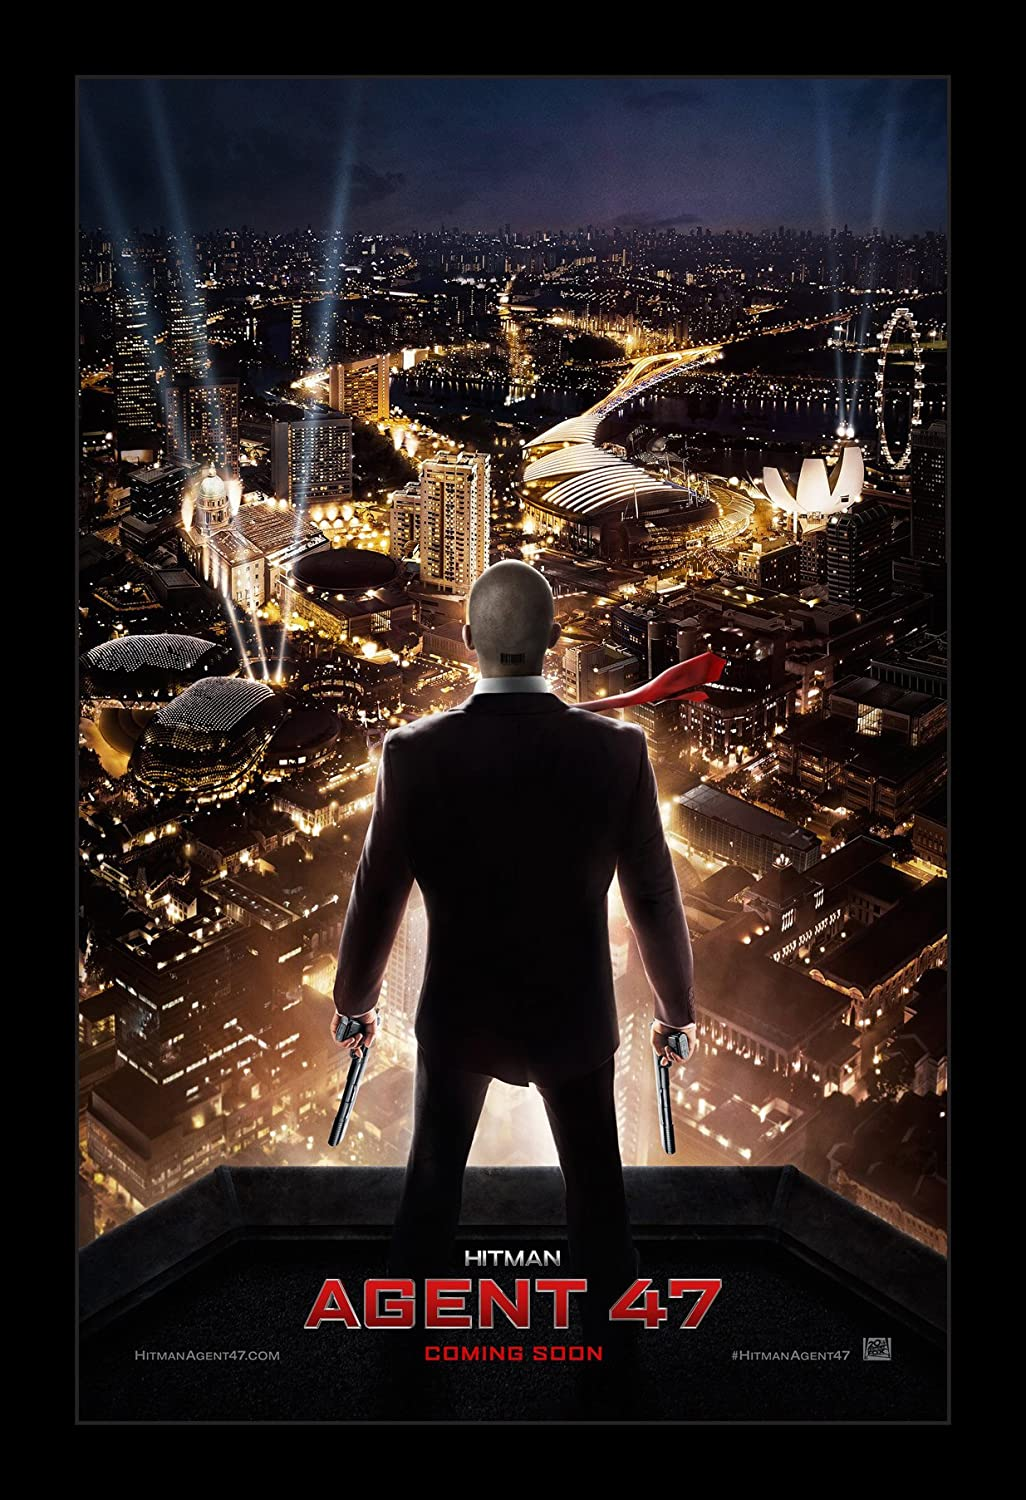 Amazon Com Wallspace Hitman Agent 47 11x17 Framed Movie Poster